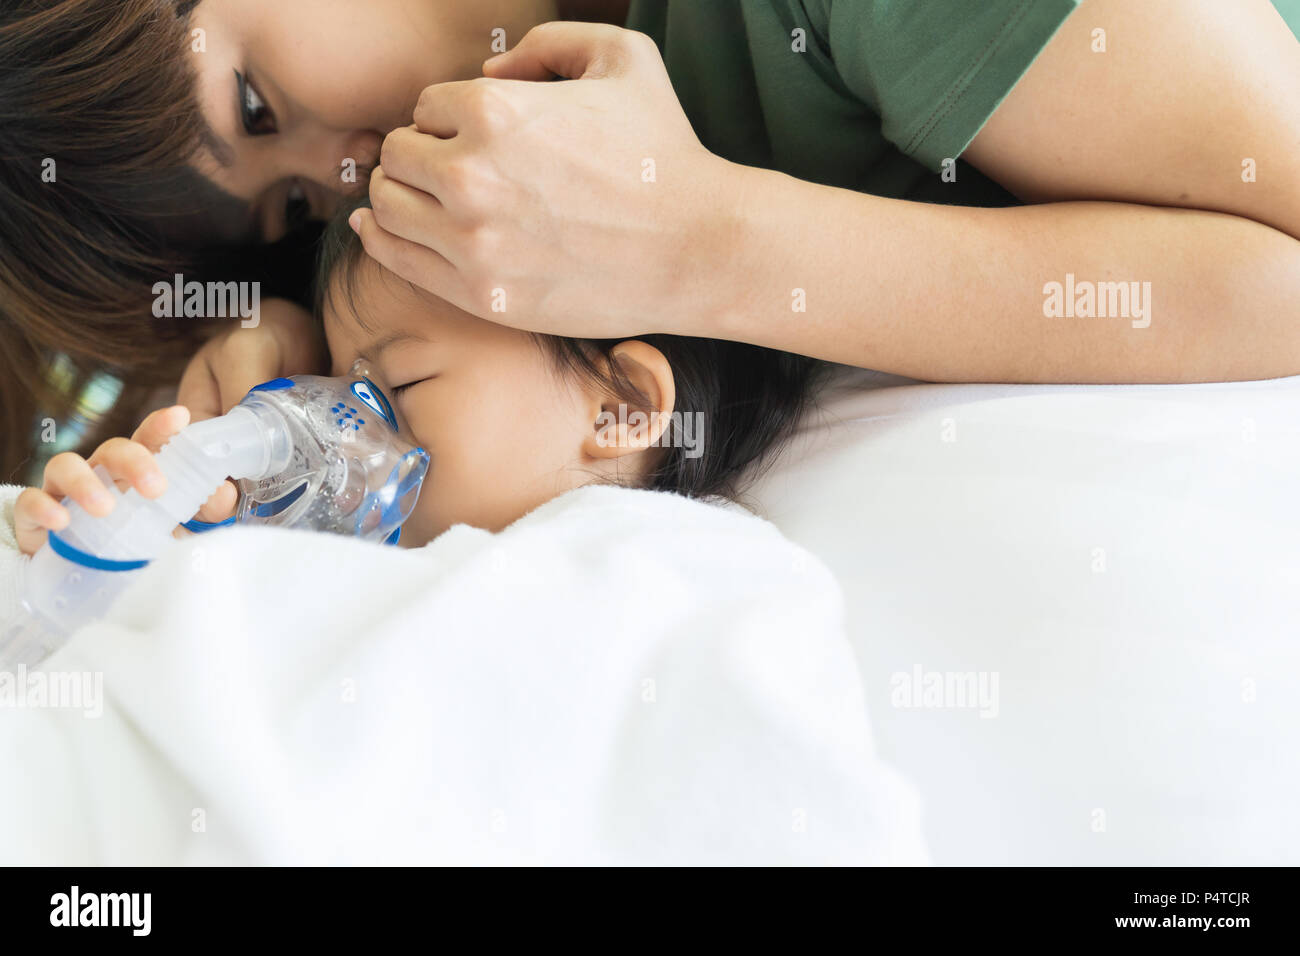 Asian baby girl breathing treatment with mother take care, at room hospital, close up health care kid concept sunny light background. - Stock Image